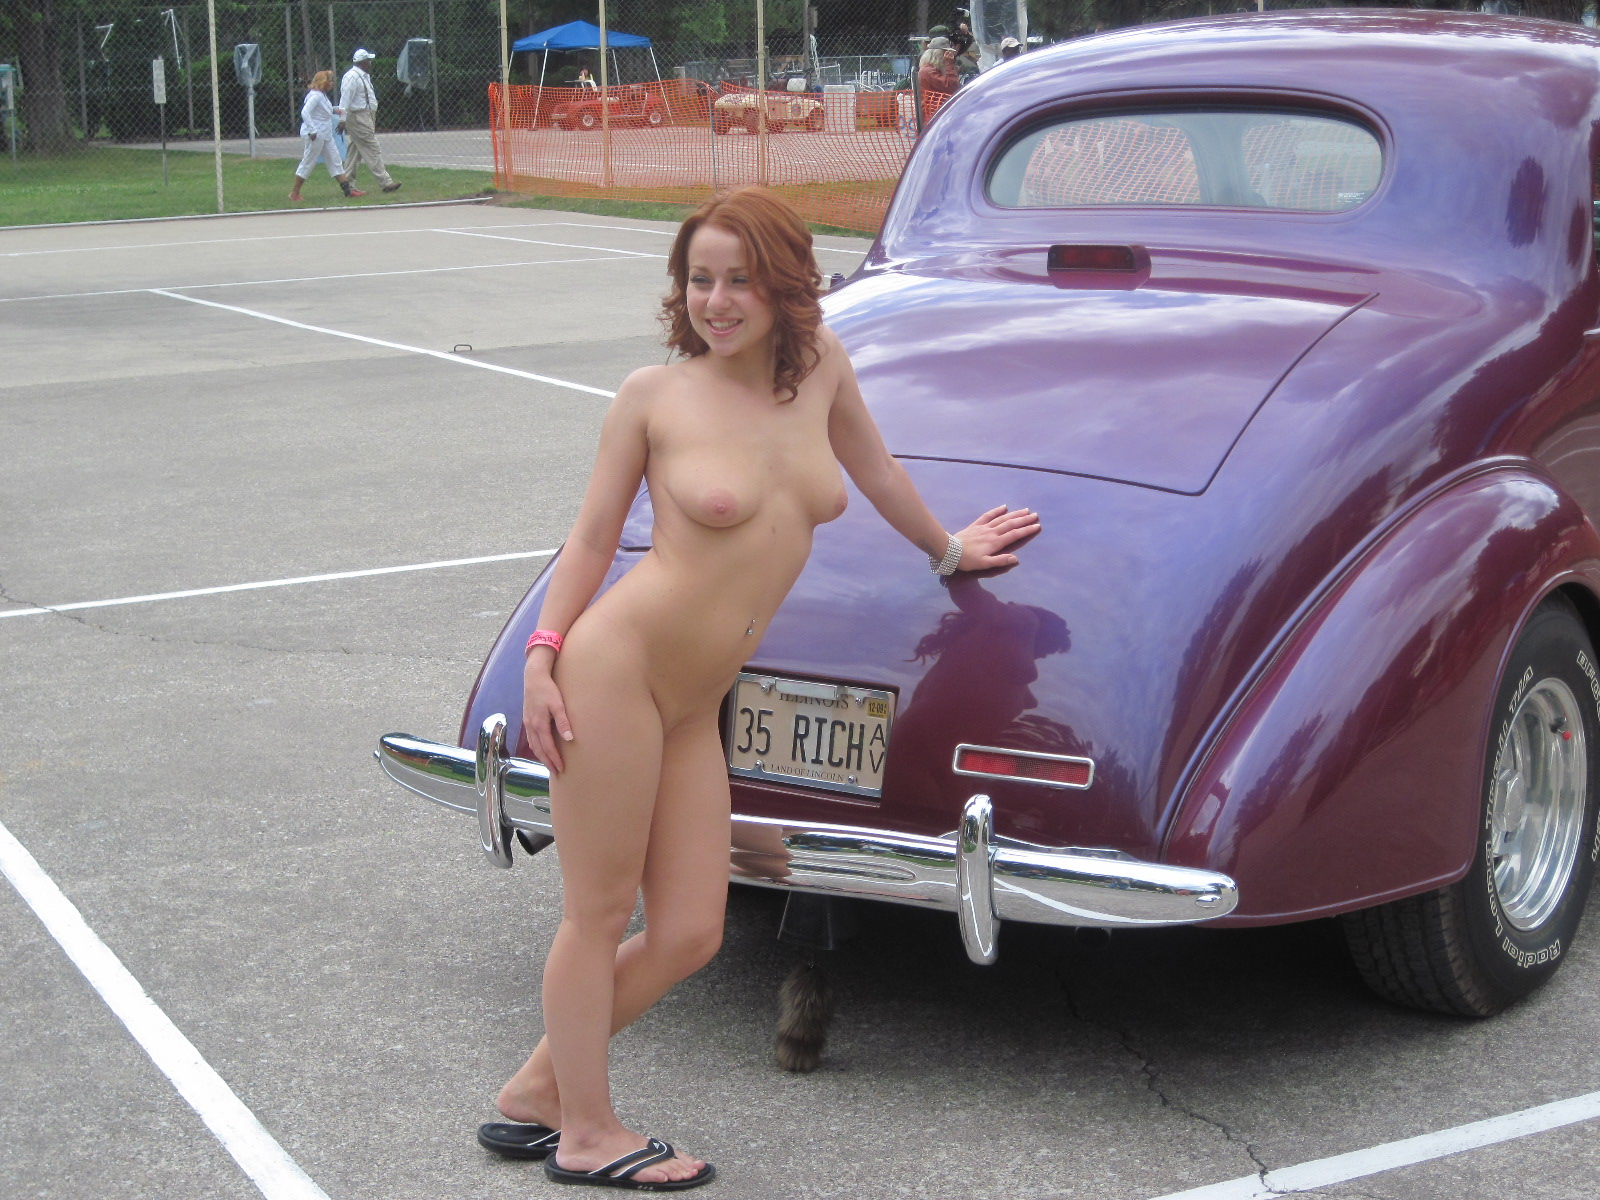 Nude Women With Cars 3